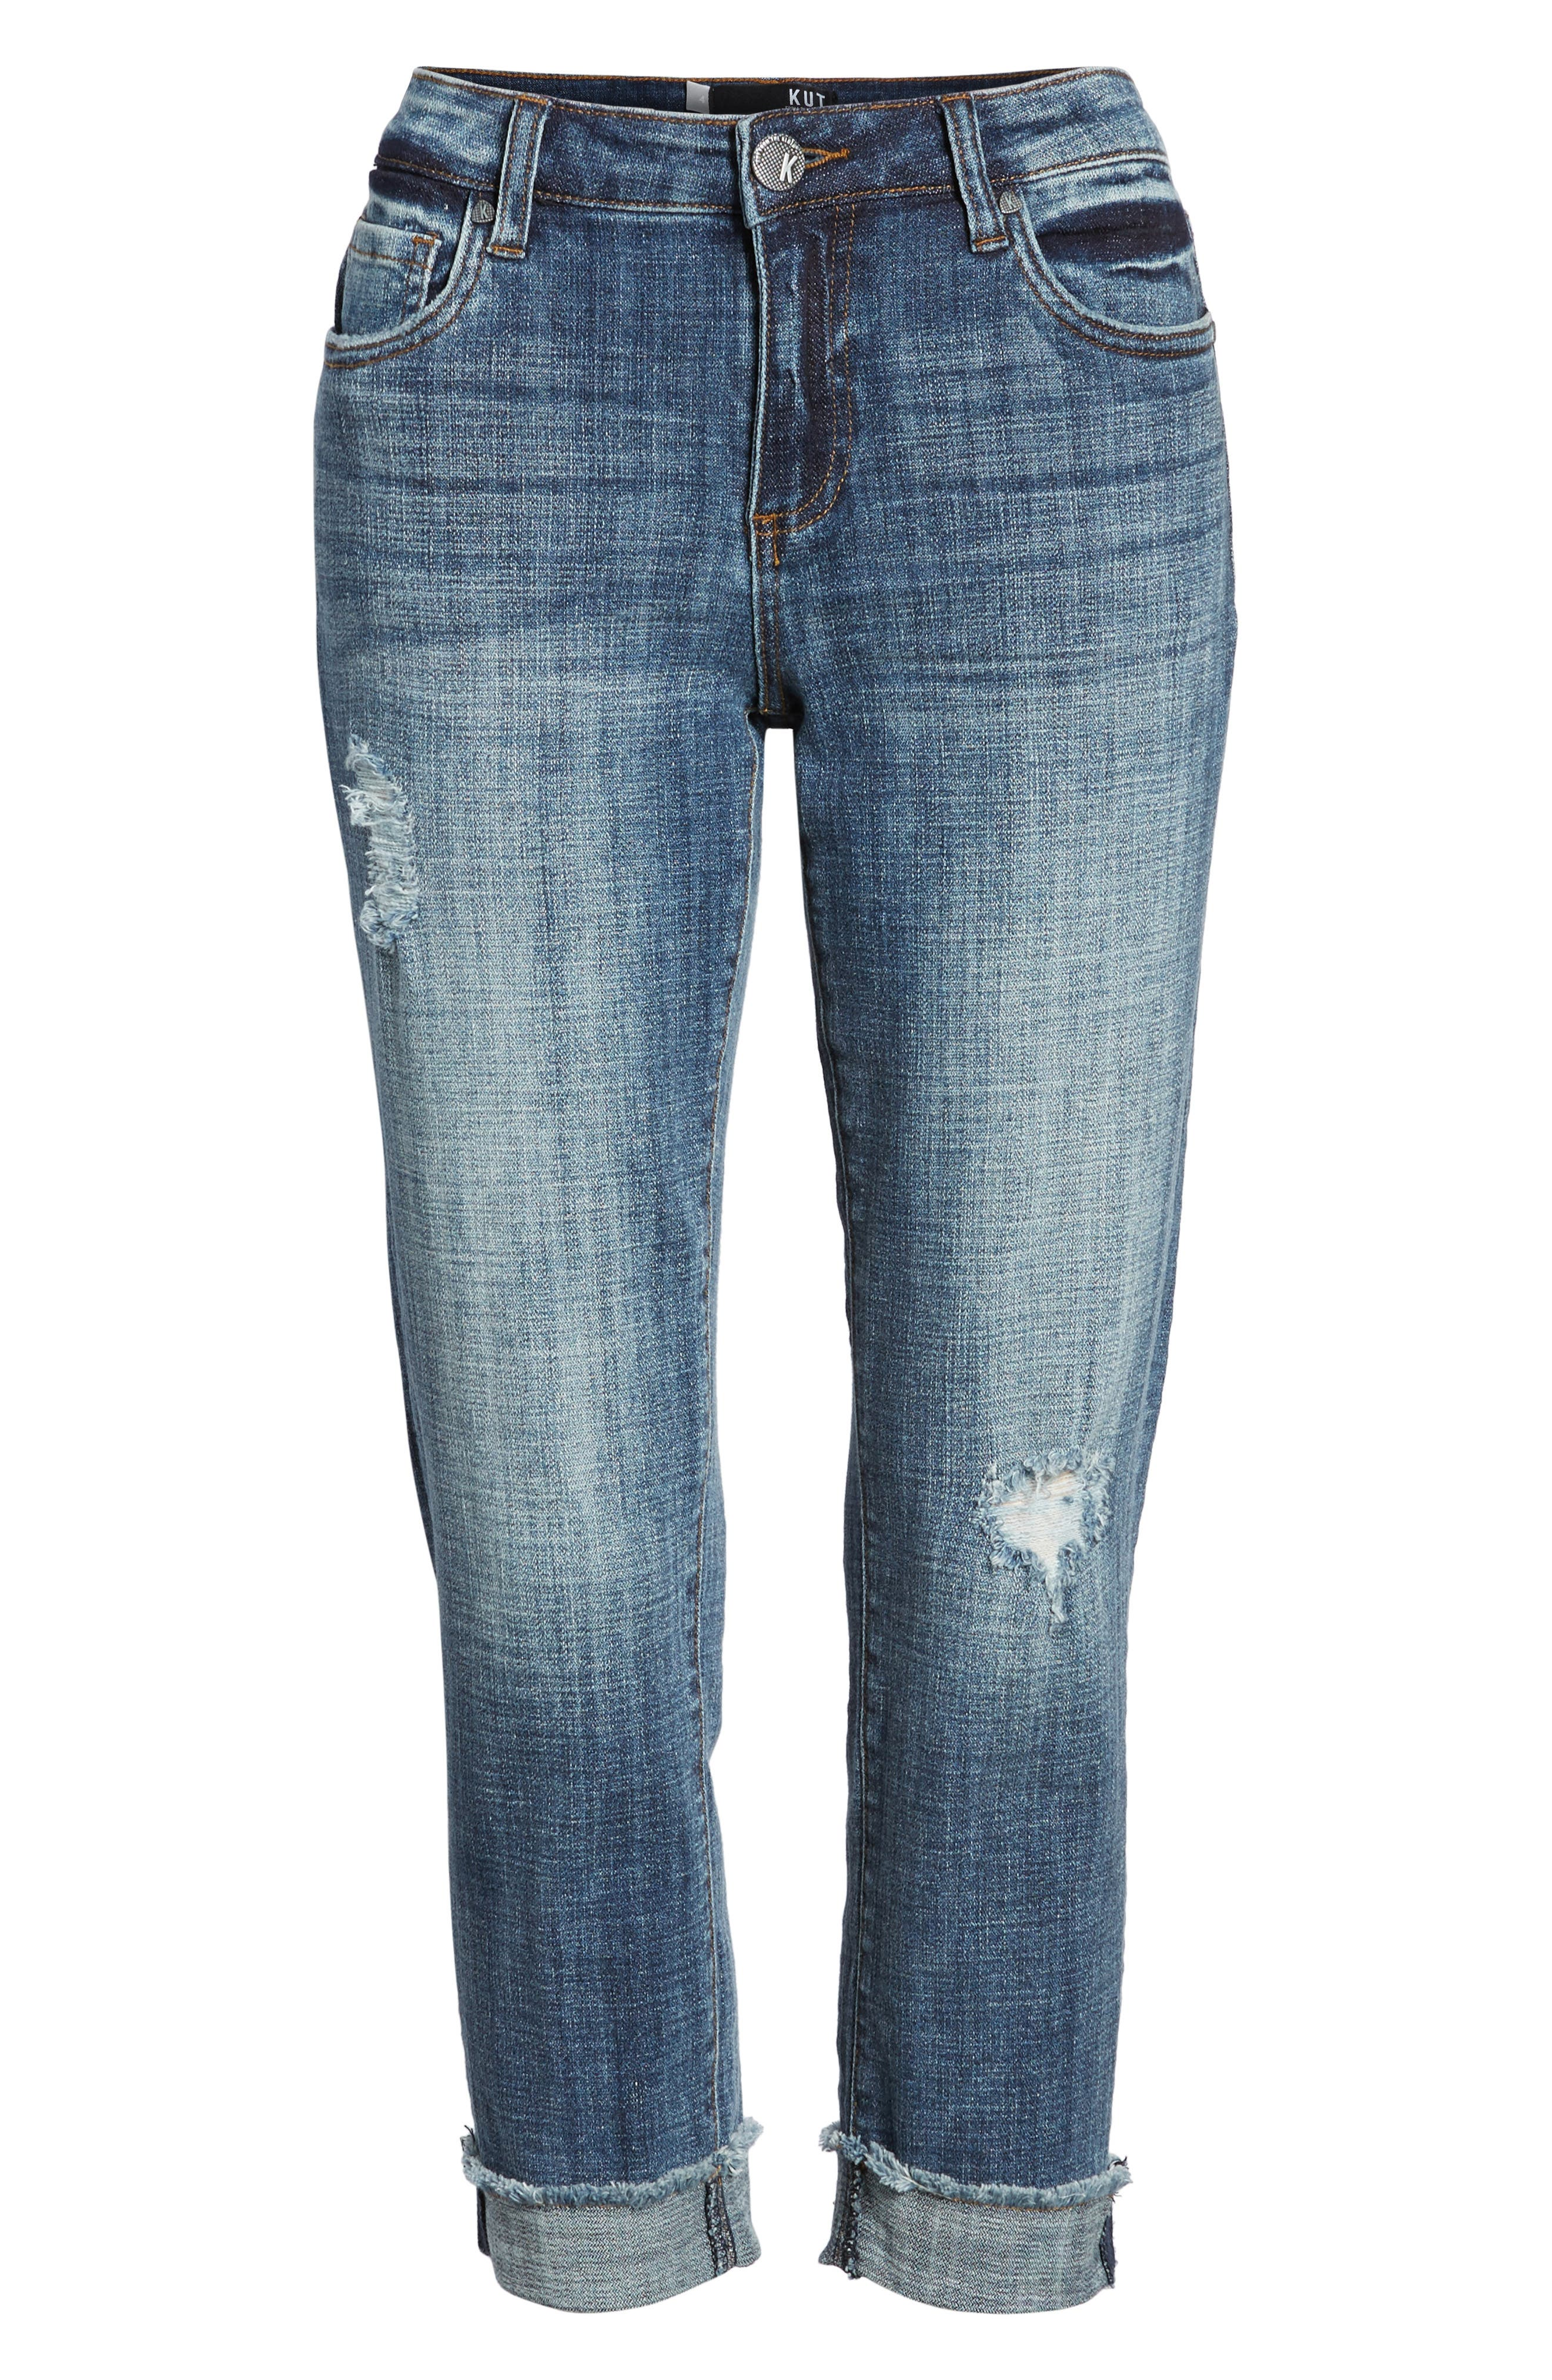 KUT FROM THE KLOTH,                             Amy Distressed Crop Jeans,                             Alternate thumbnail 7, color,                             400